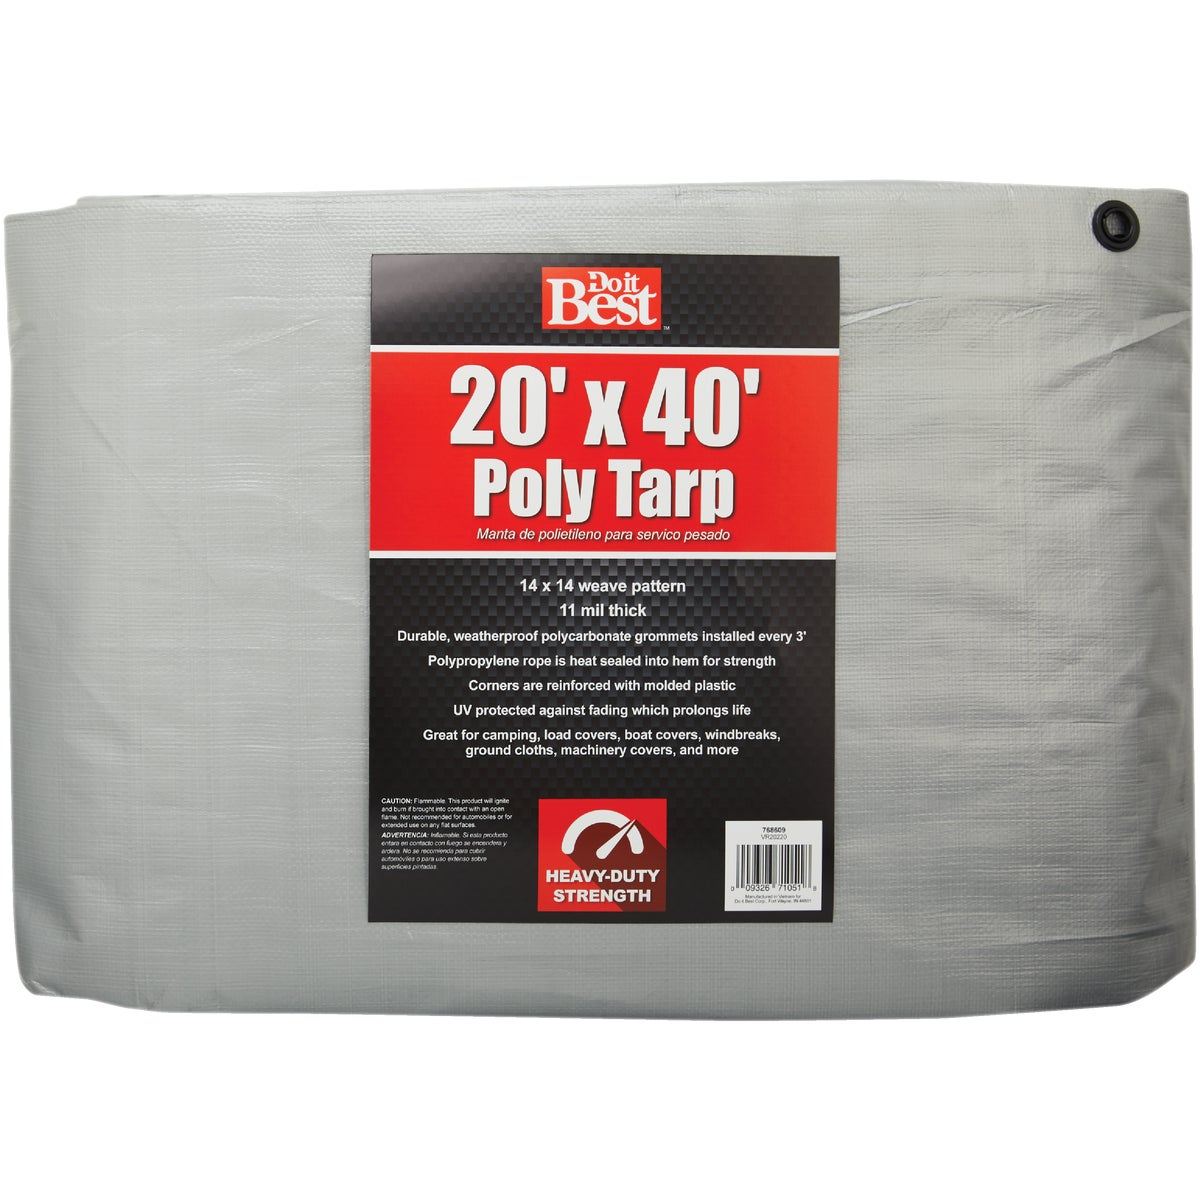 20X40 SLVR H/DUTY TARP - 768609 by Do it Best